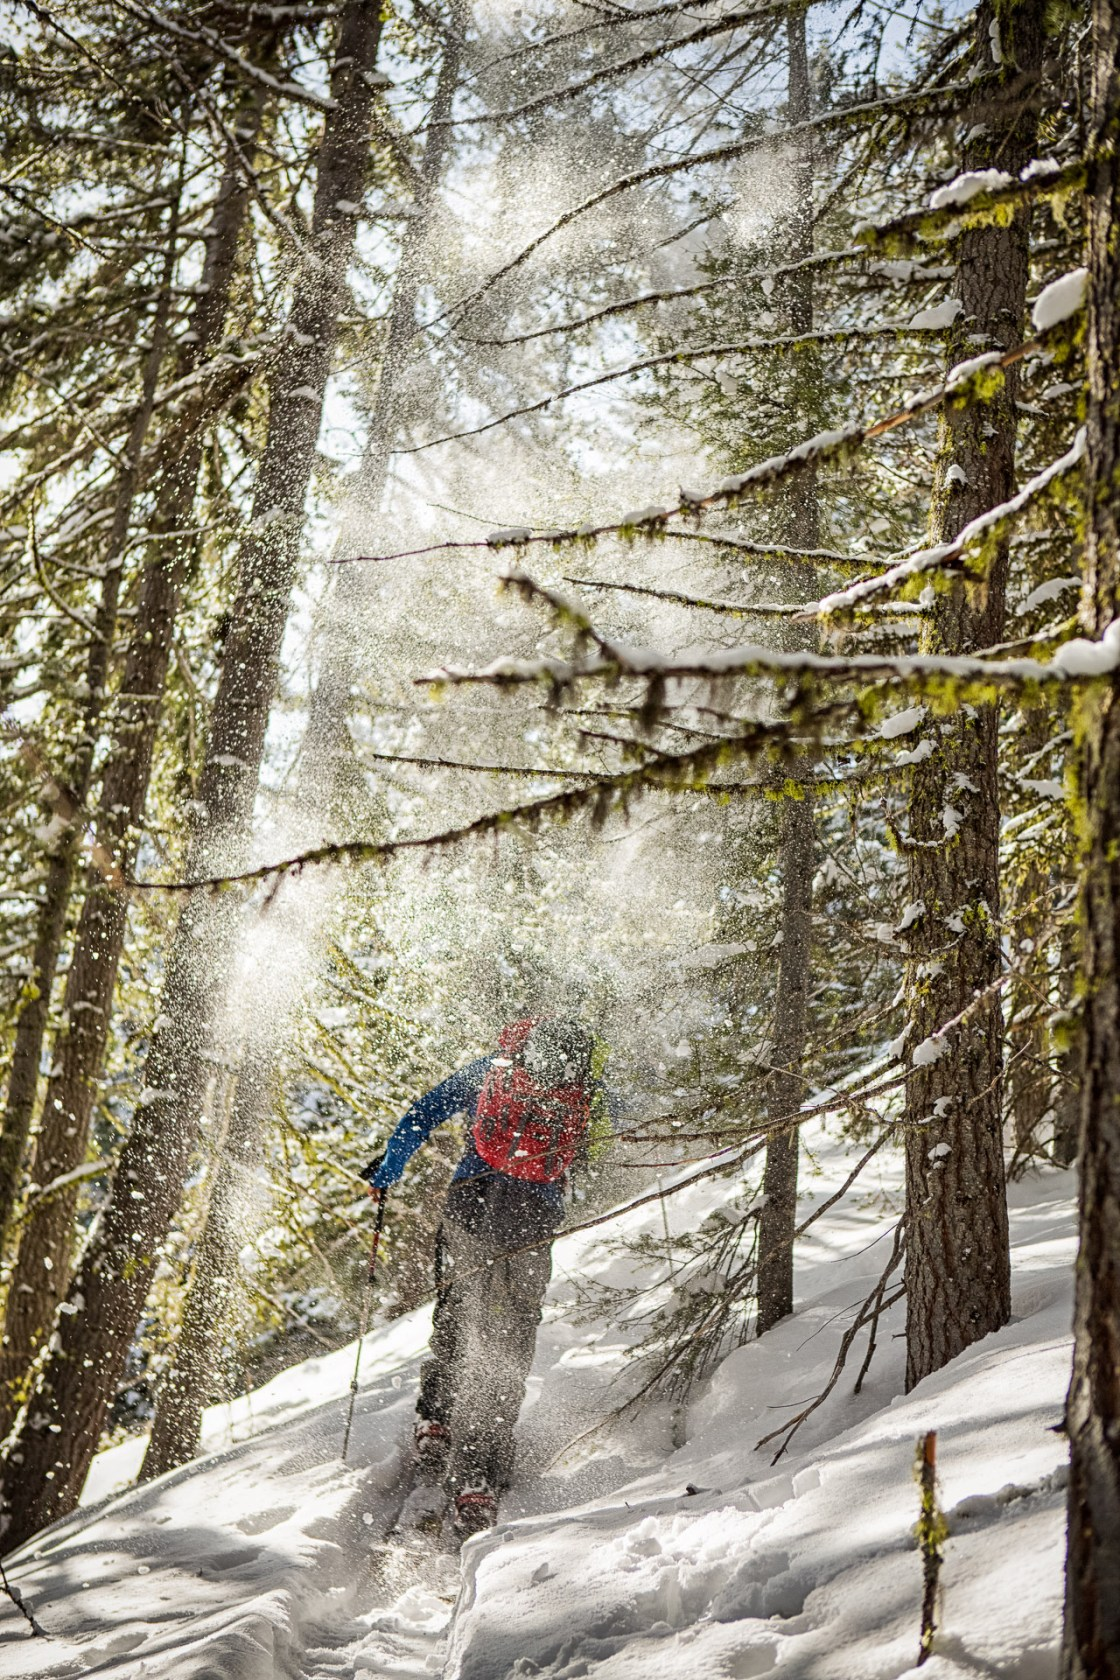 Neil Provo skinning through a lichen-covered snowglobe above Holden Village, Washington